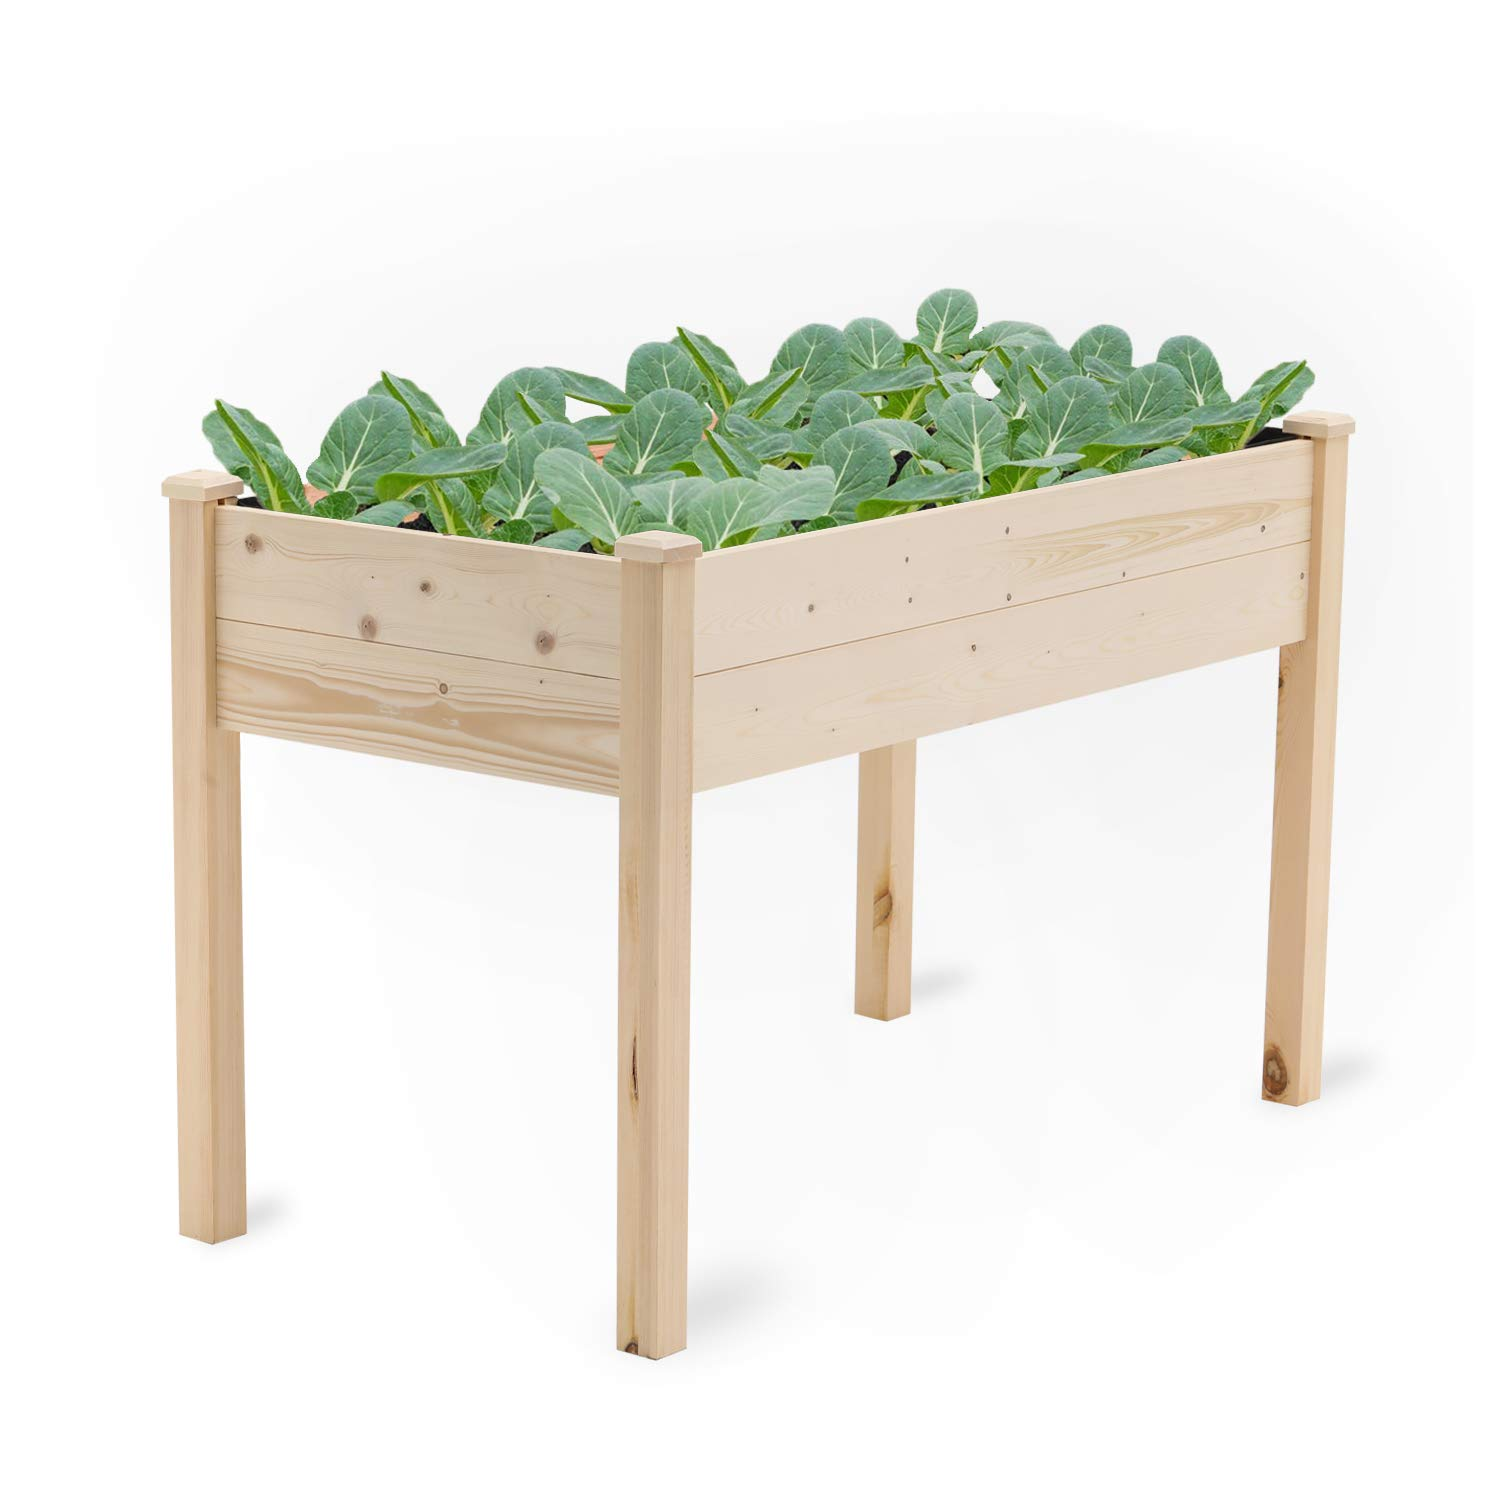 Pataku Raised Wooden Garden Bed Kit for Backyard,Patio Planting Bed 48.4 inches x30 inches x24.4 inches